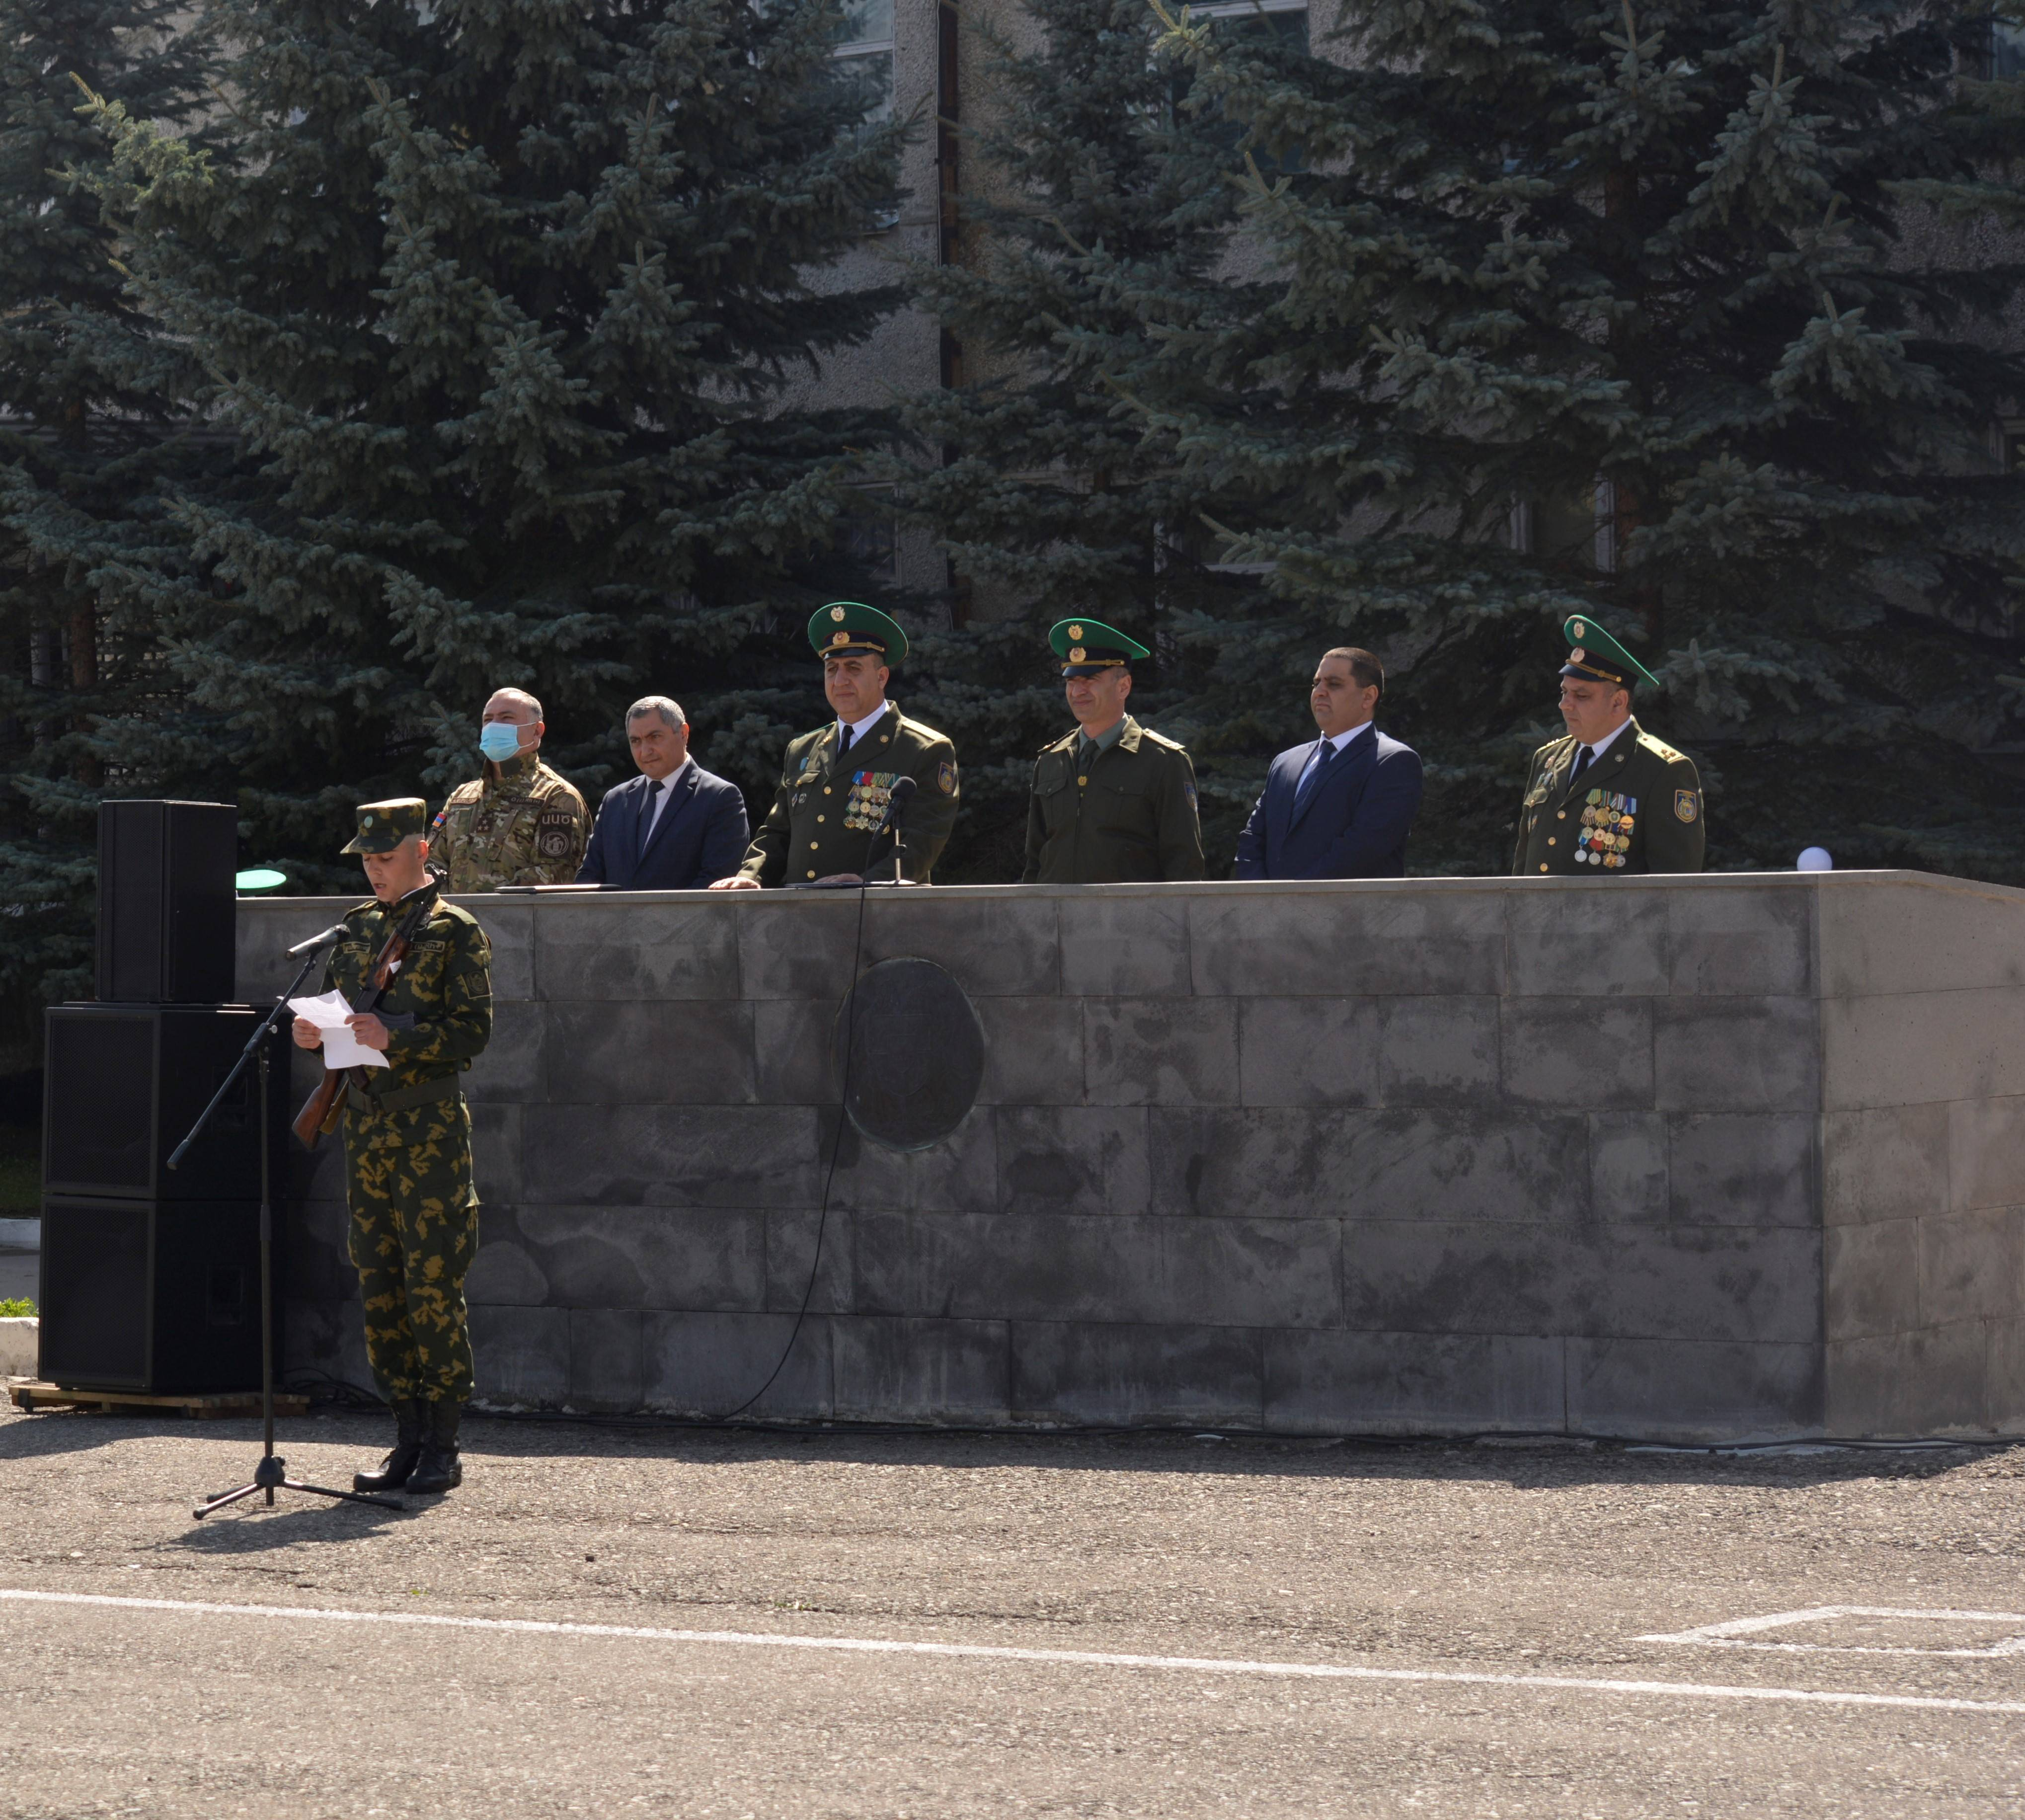 A SOLEMN SWEARING-IN CEREMONY OF THE RECRUITS IN THE RA NSS BORDER GUARD TROOPS (video, photos)